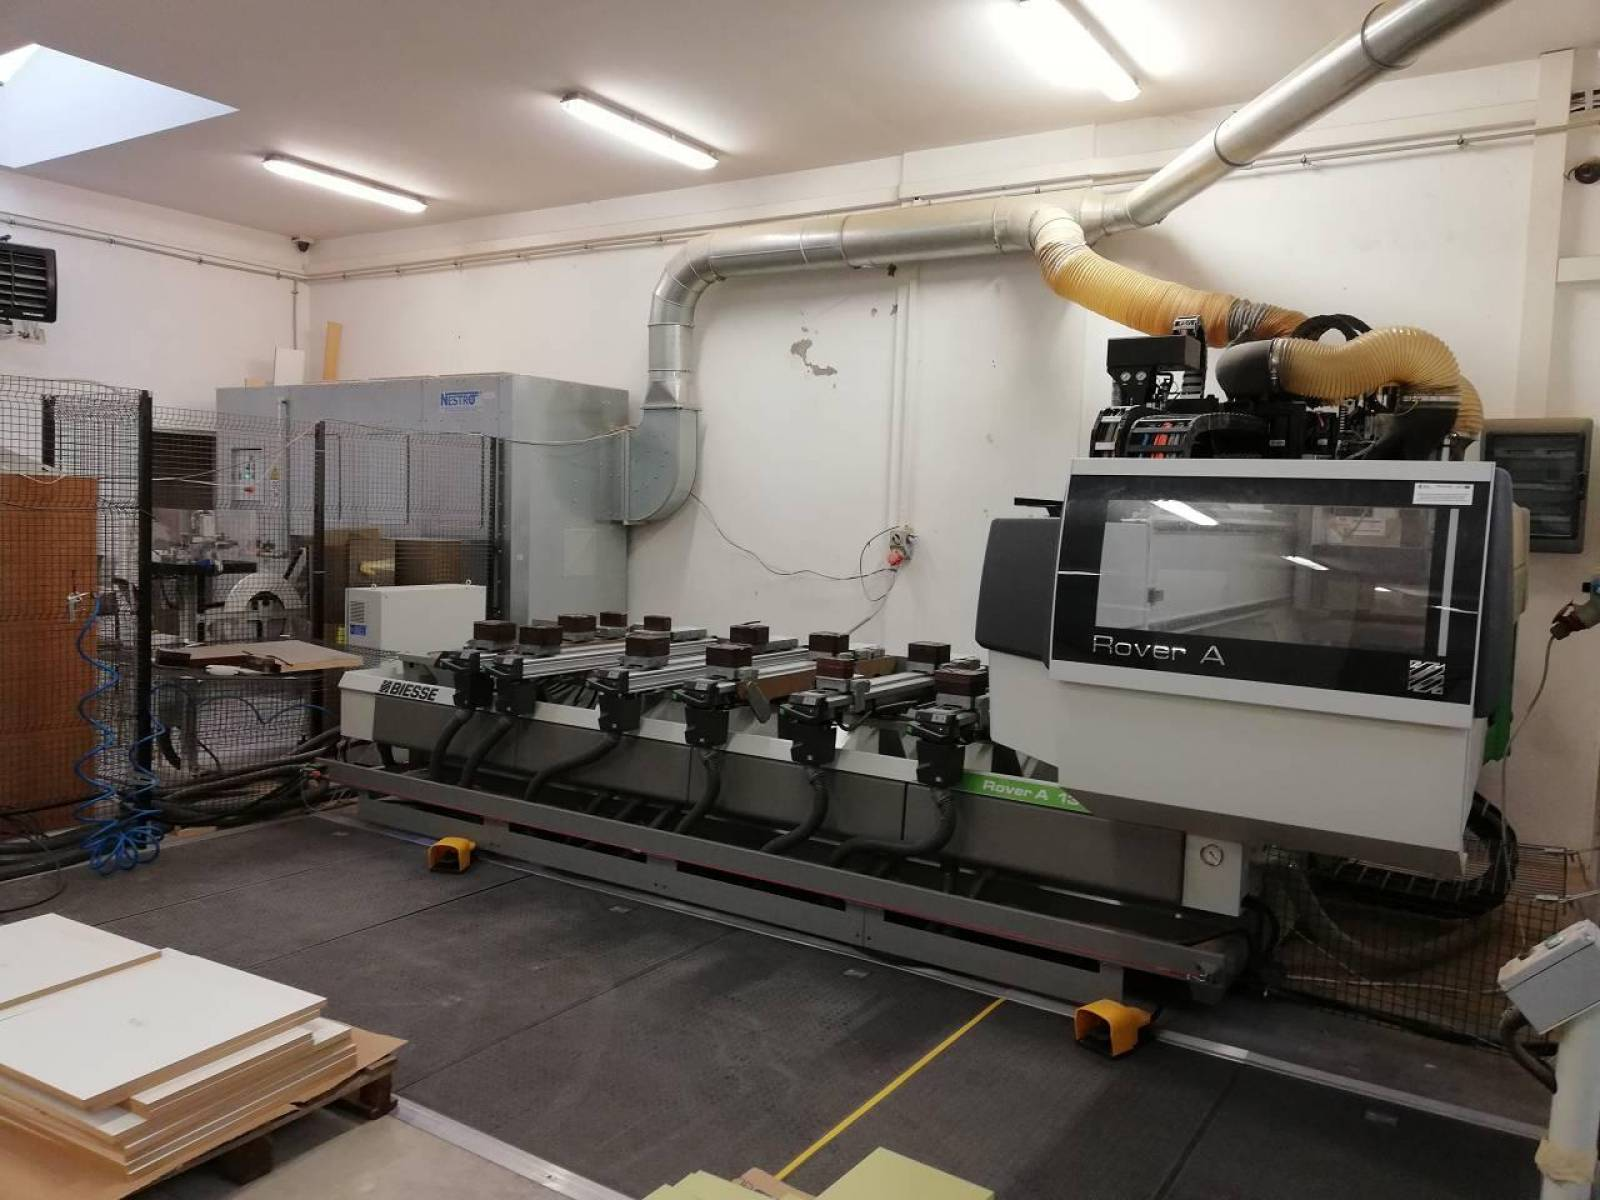 CNC machining centre BIESSE ROVER A EDGE 1332 buy second-hand